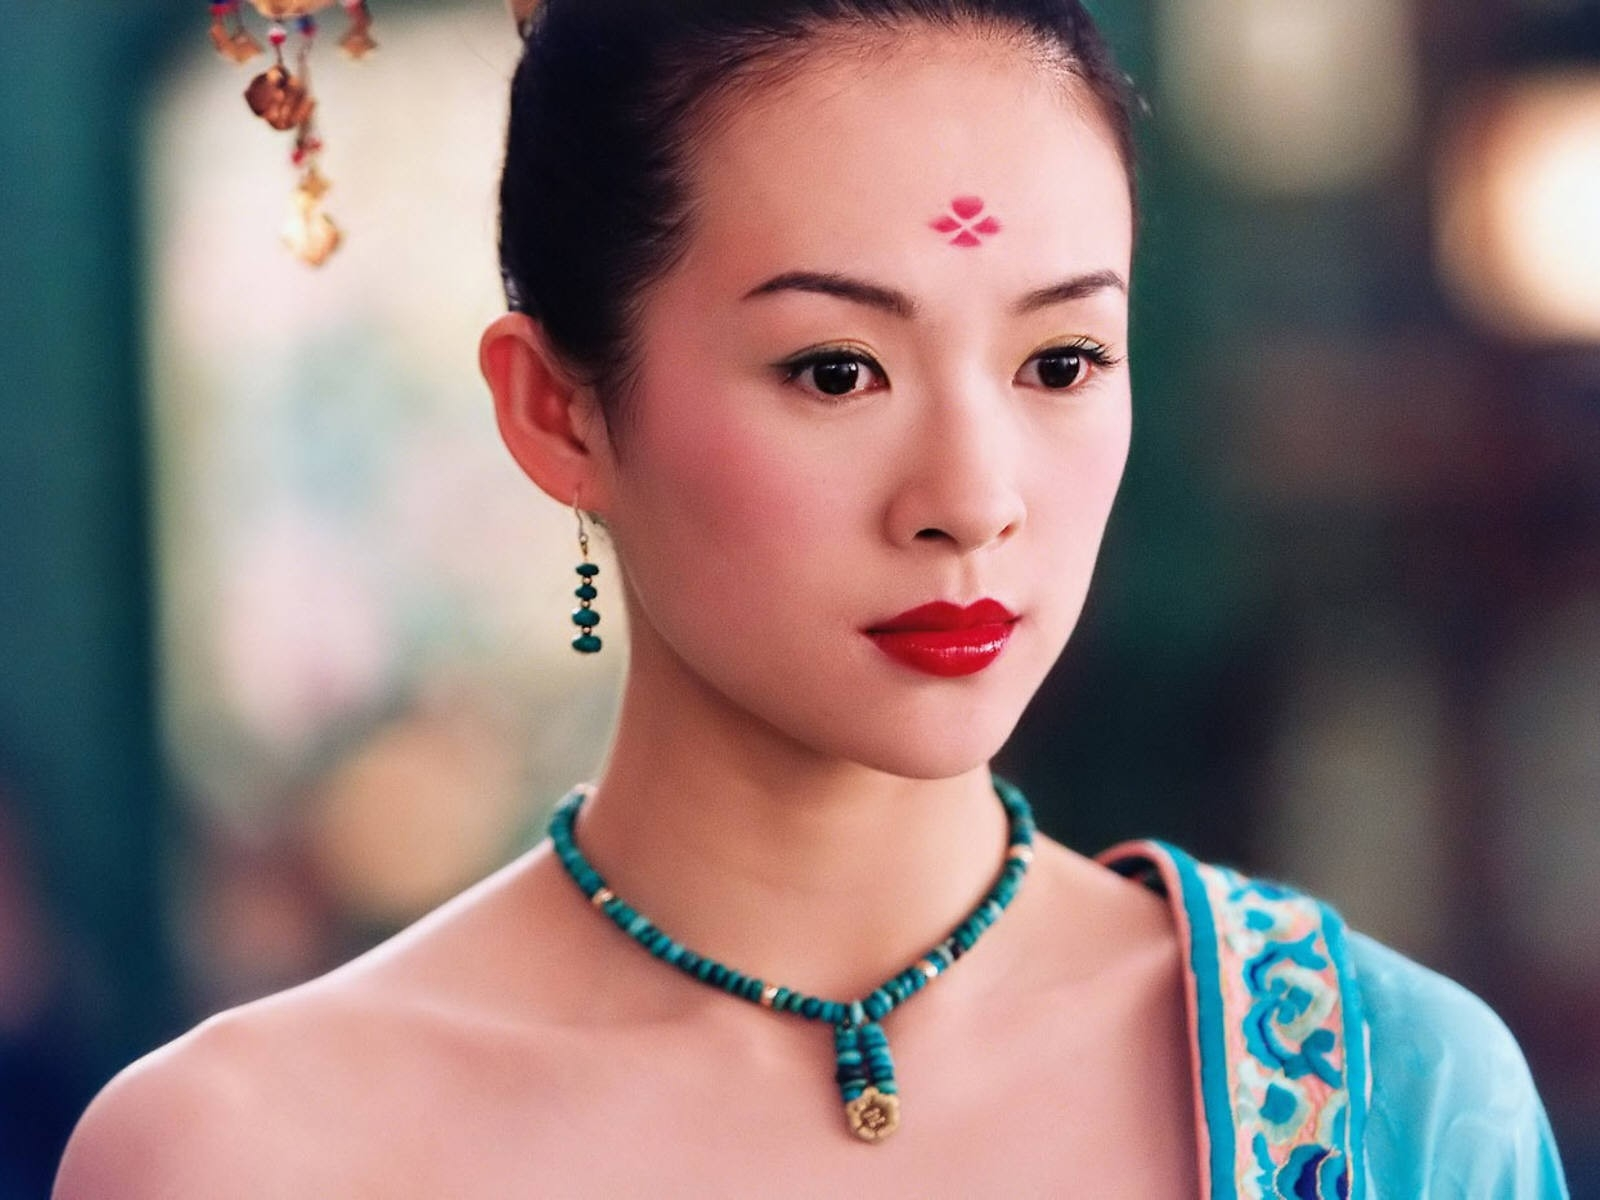 Wallpaper dell'attrice orientale Zhang Ziyi